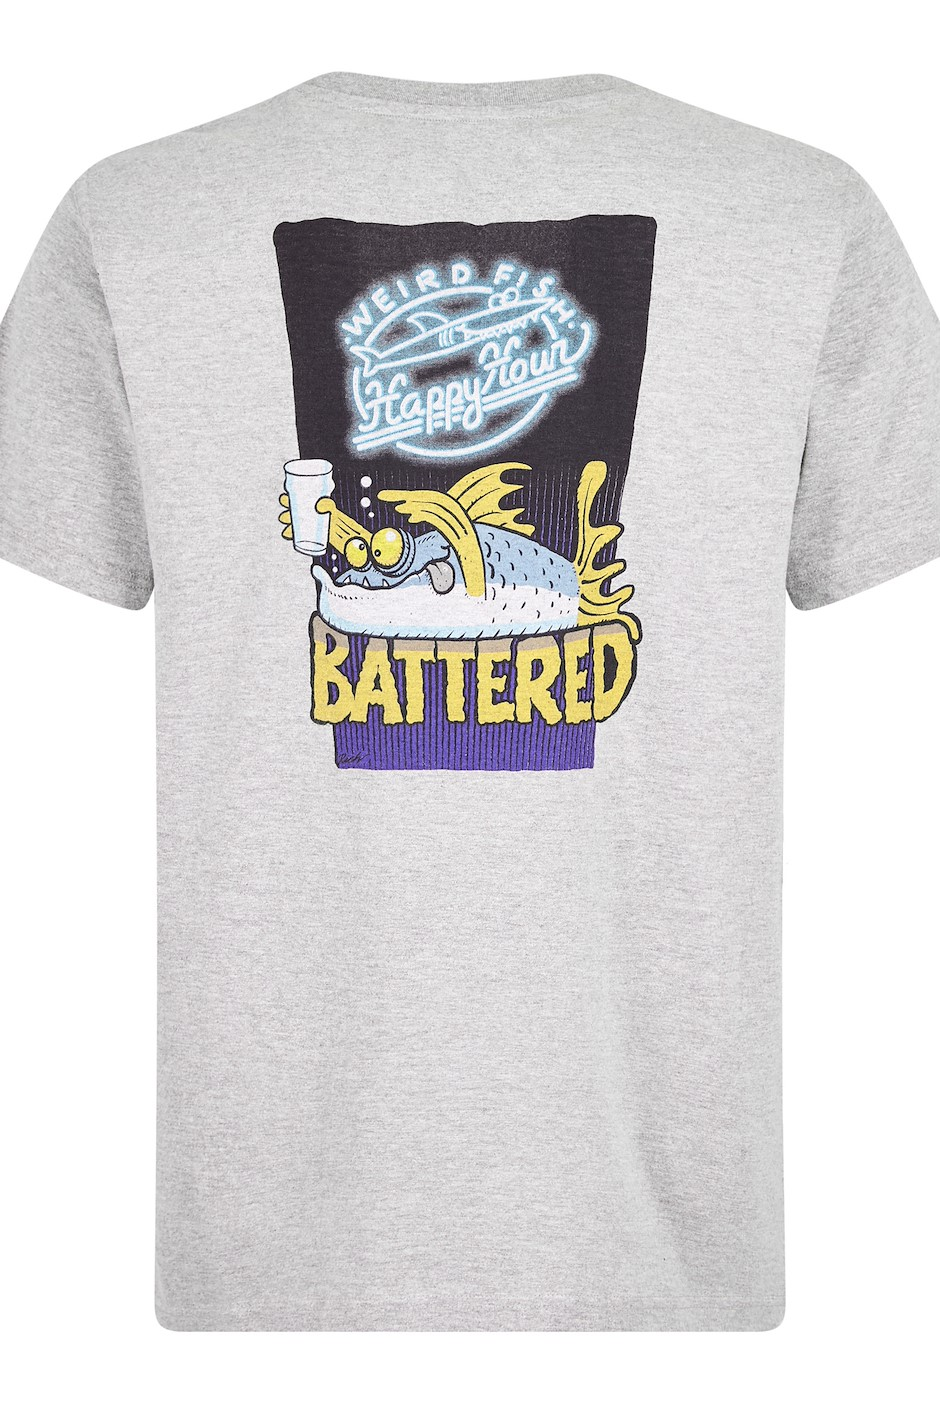 Battered Artist T-Shirt Grey Marl